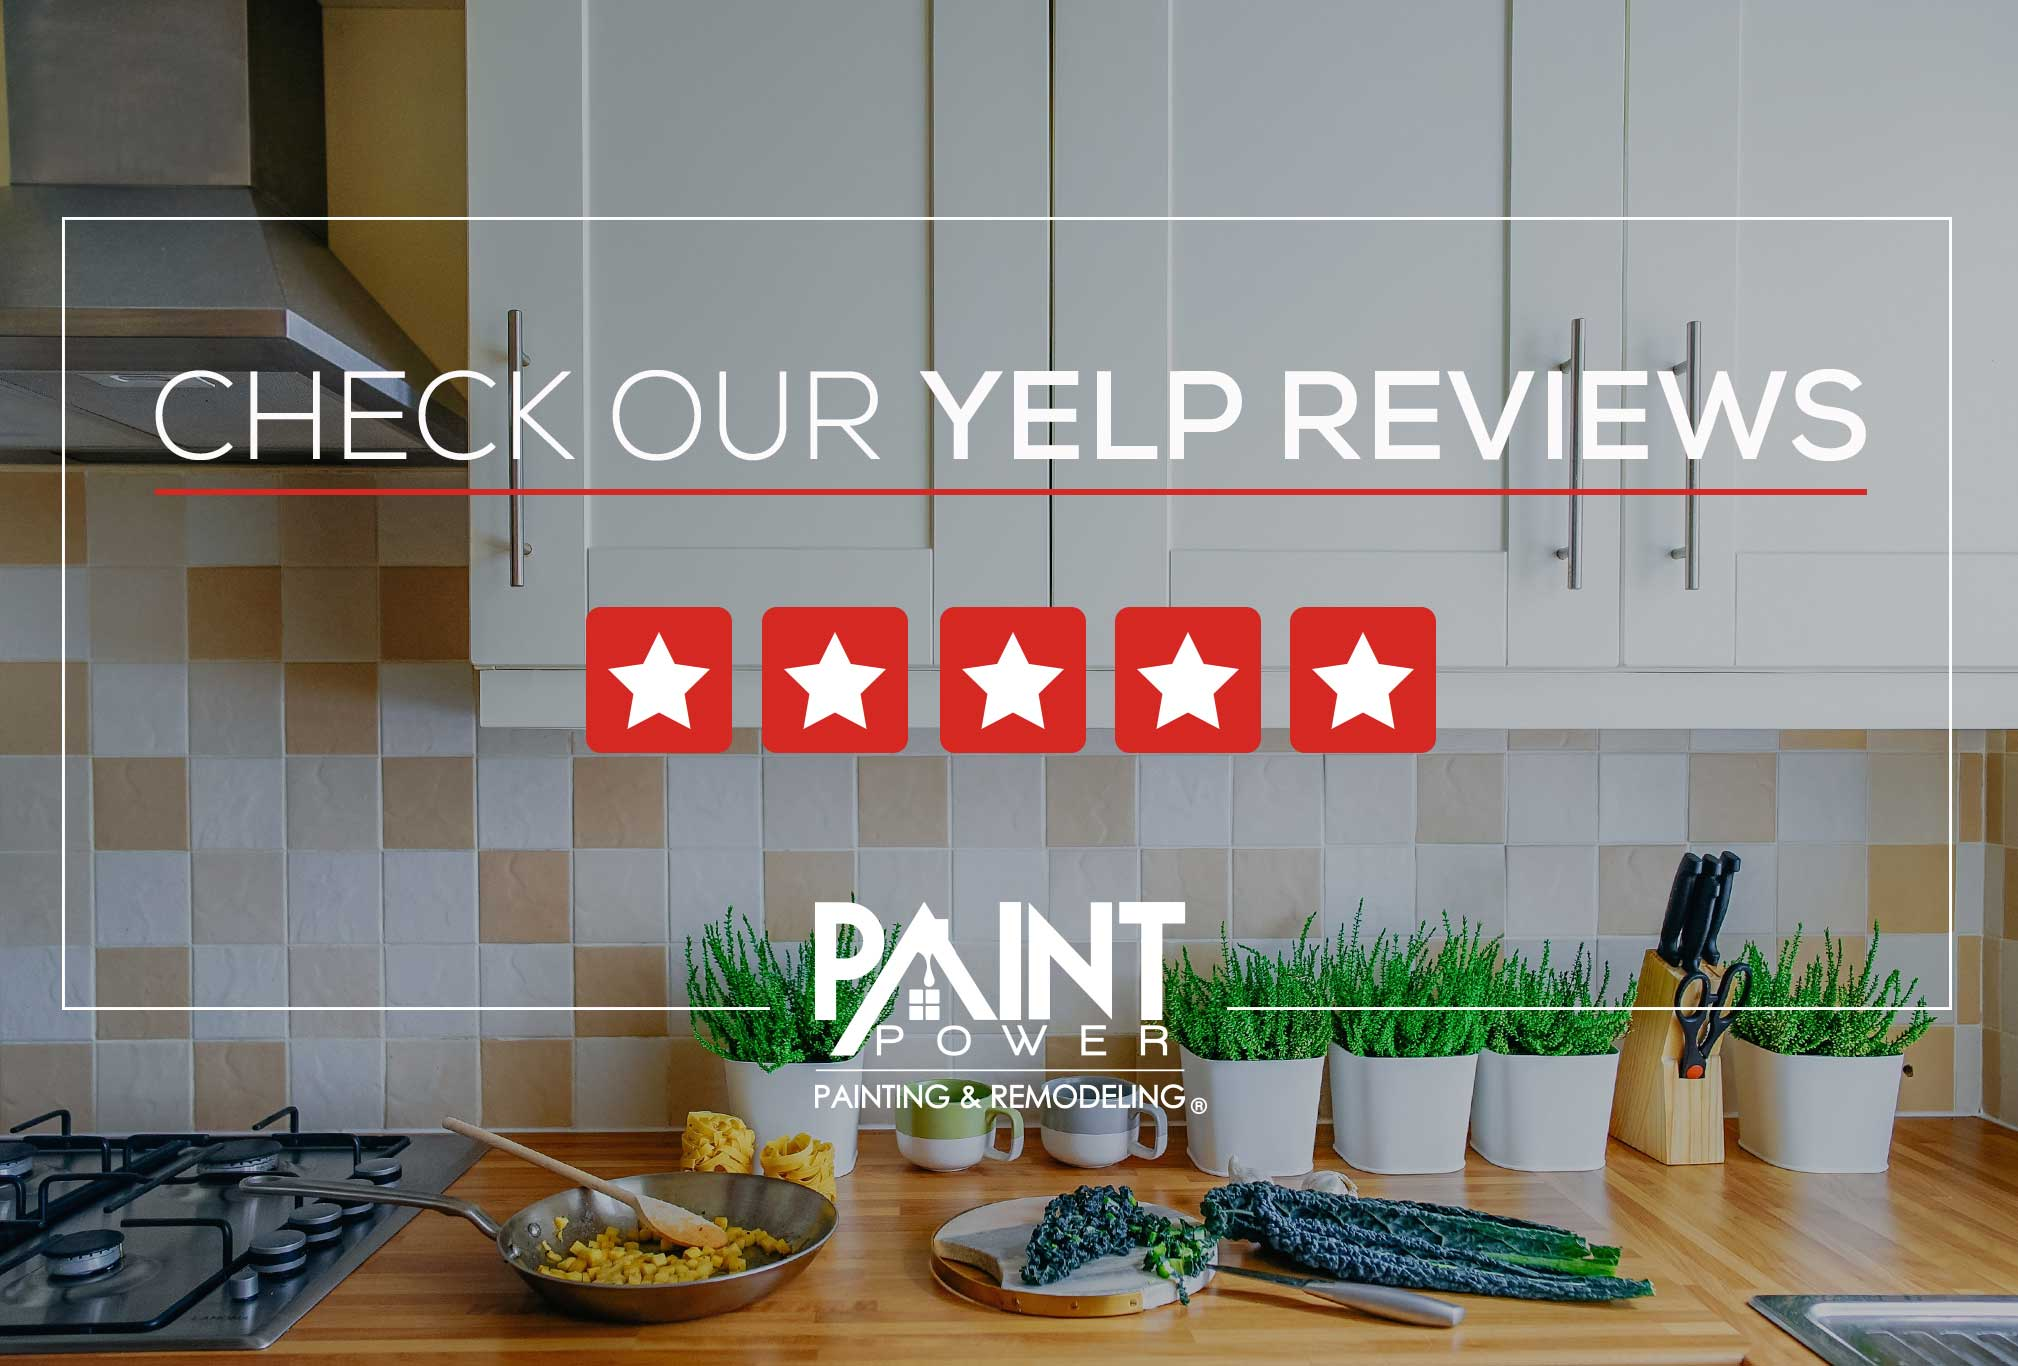 https://paintpower.net/wp-content/uploads/2018/06/yelp-reviews.jpg